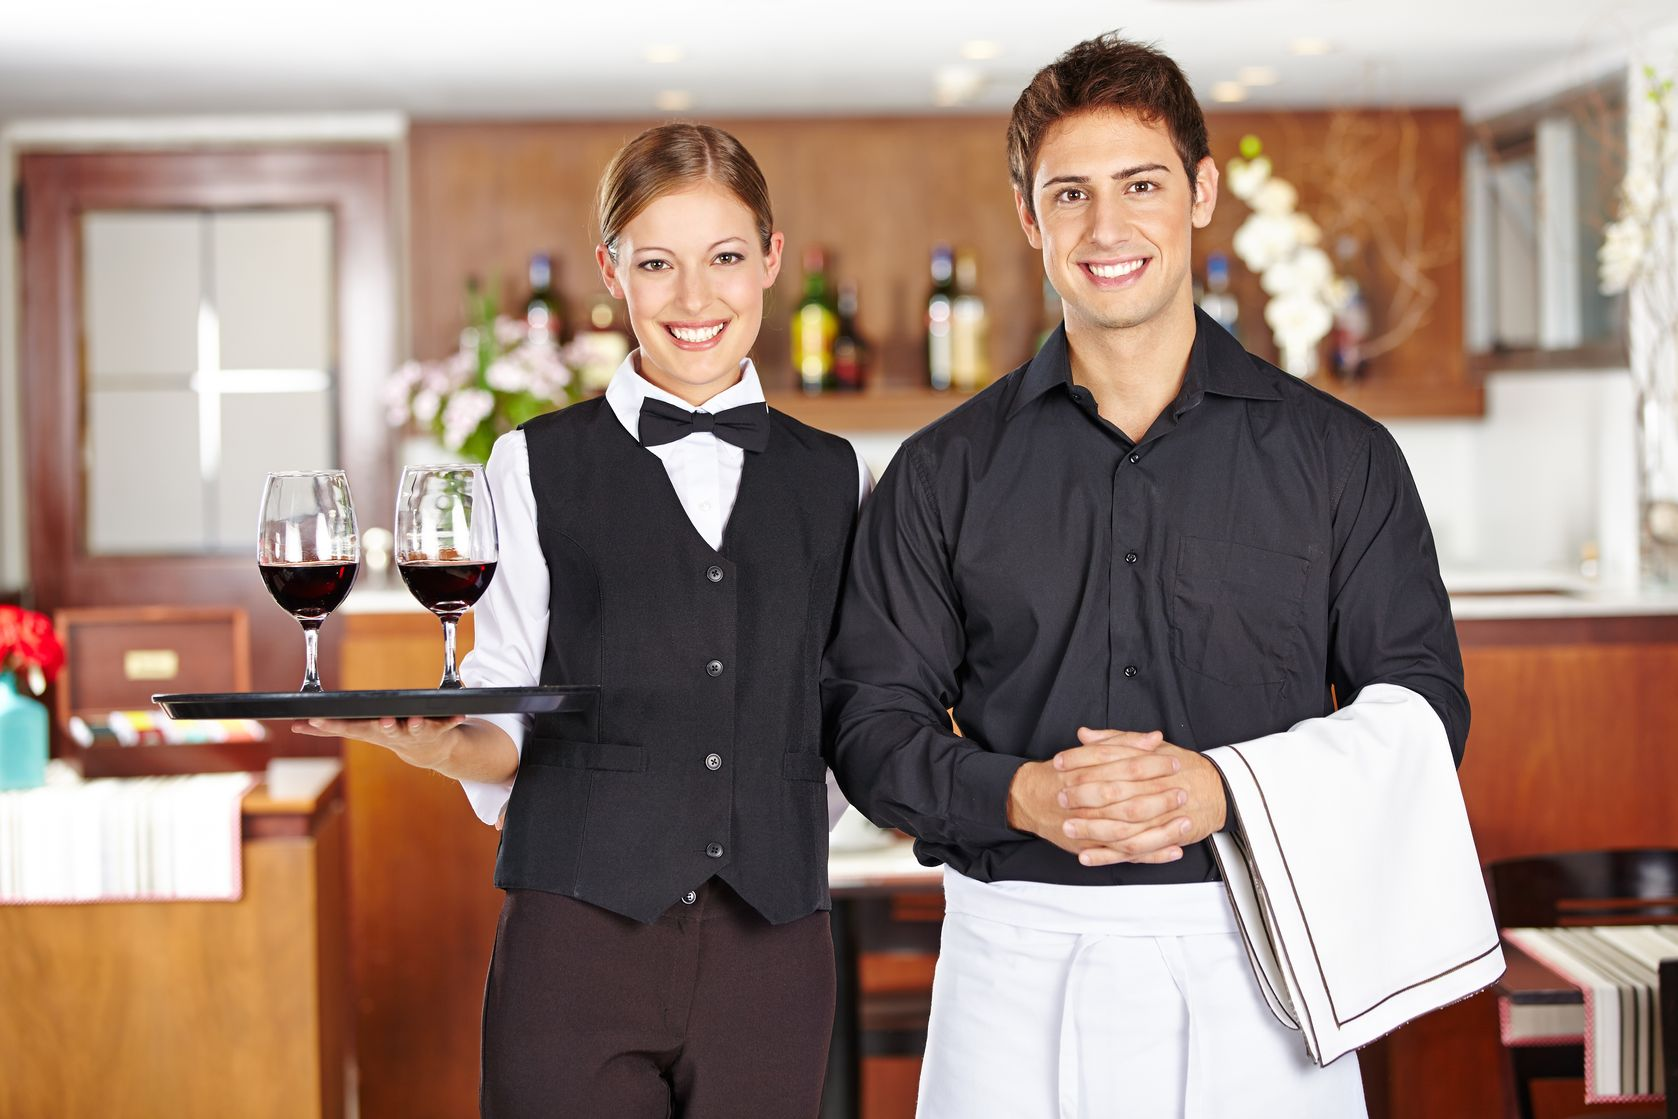 Hospitality and Catering Business for sale in Bundaberg